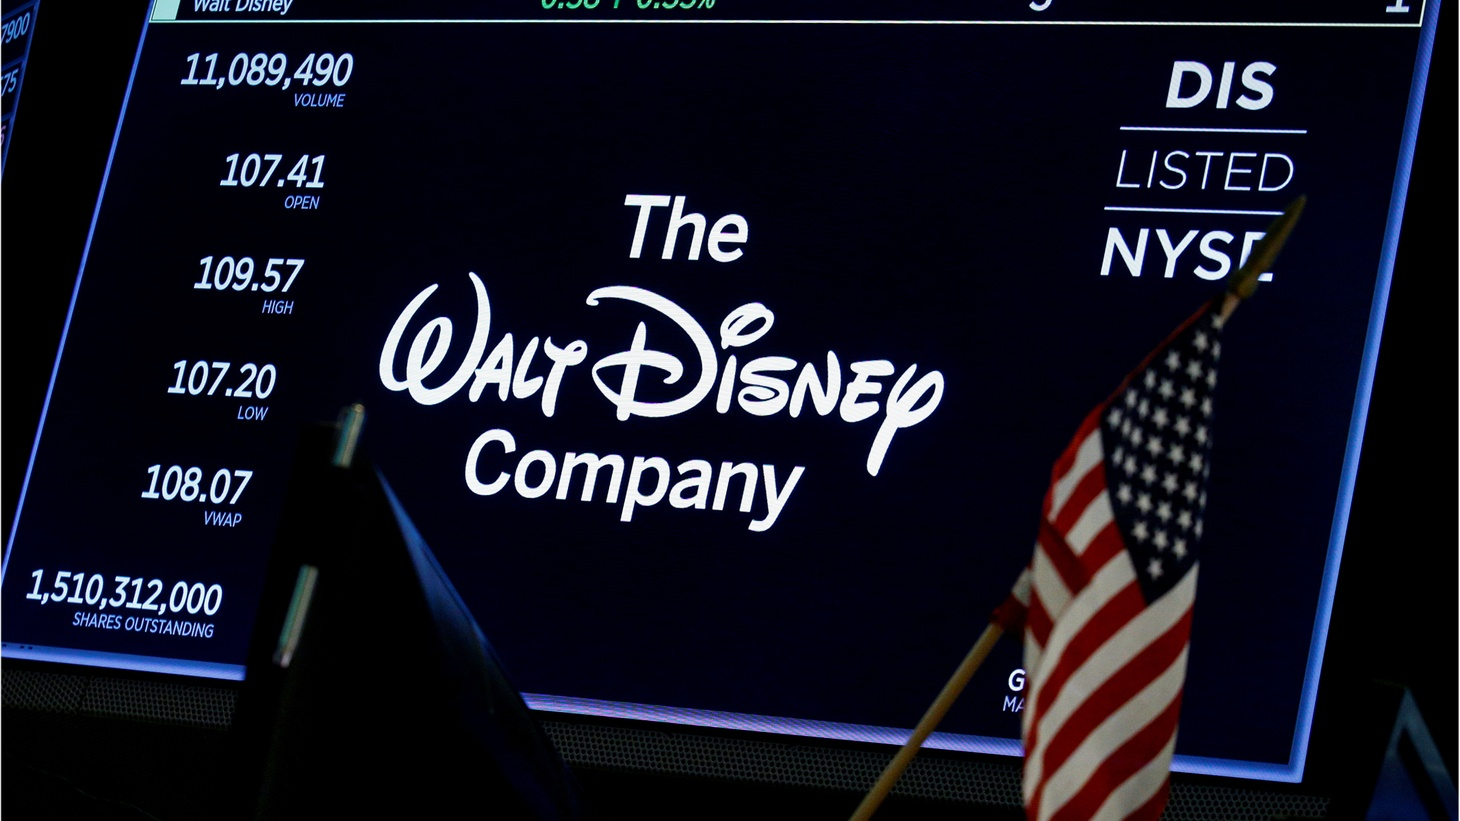 Disney has agreed to a $52 billion deal to take over the majority of 21st Century Fox. We learn how the purchase could change what you watch on TV, in theaters, and online.